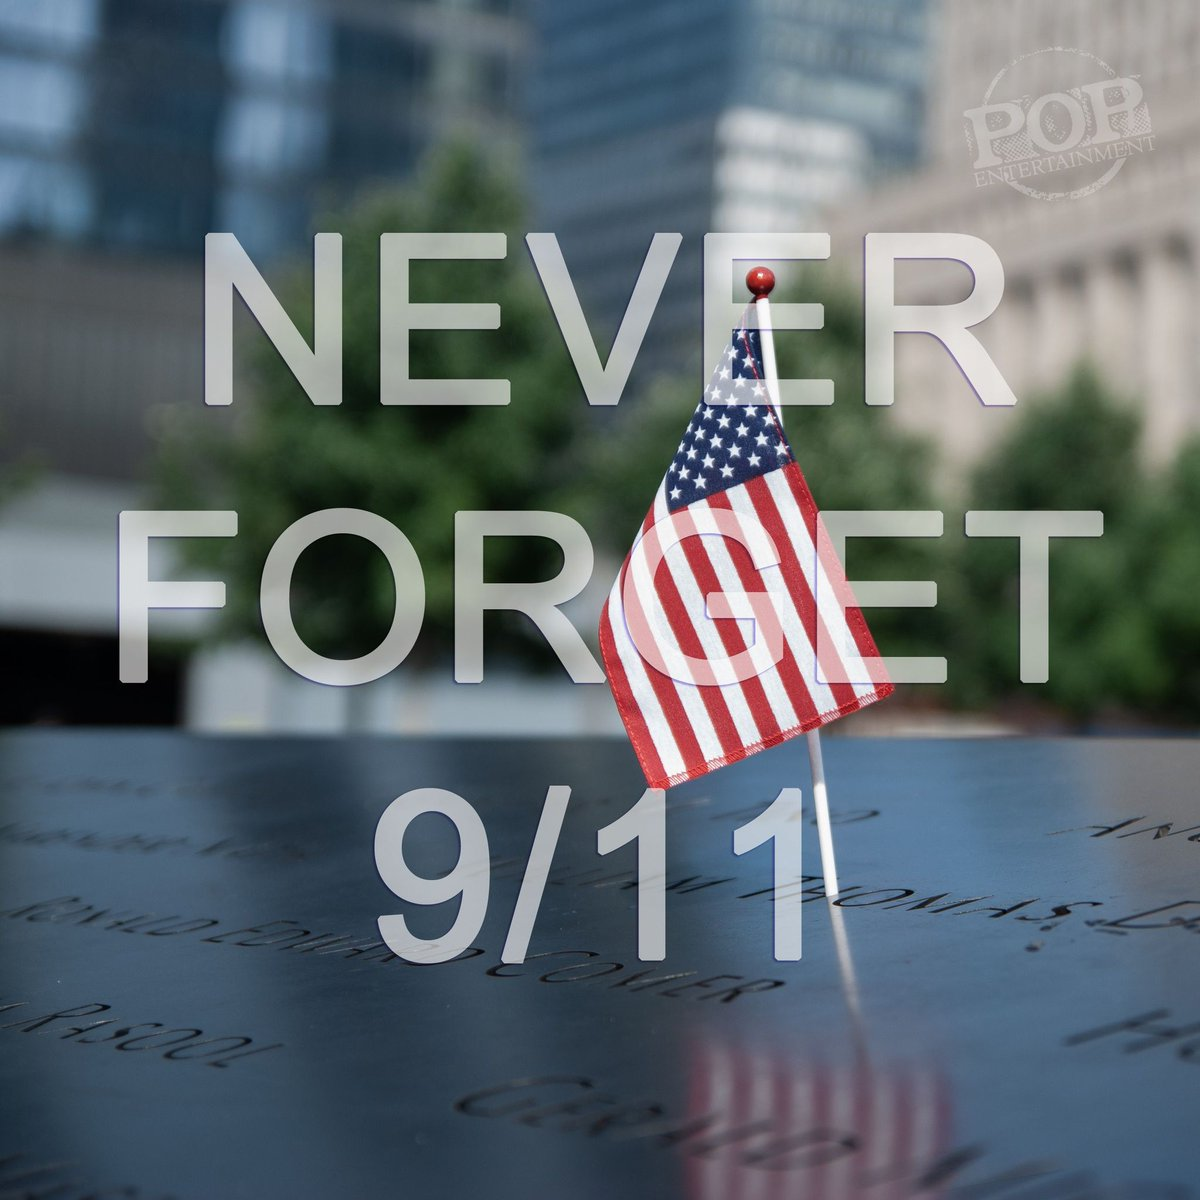 In memory of those we have lost, and continue to lose, due to that tragic day 19 years ago. https://t.co/ZnCpTDzwu6